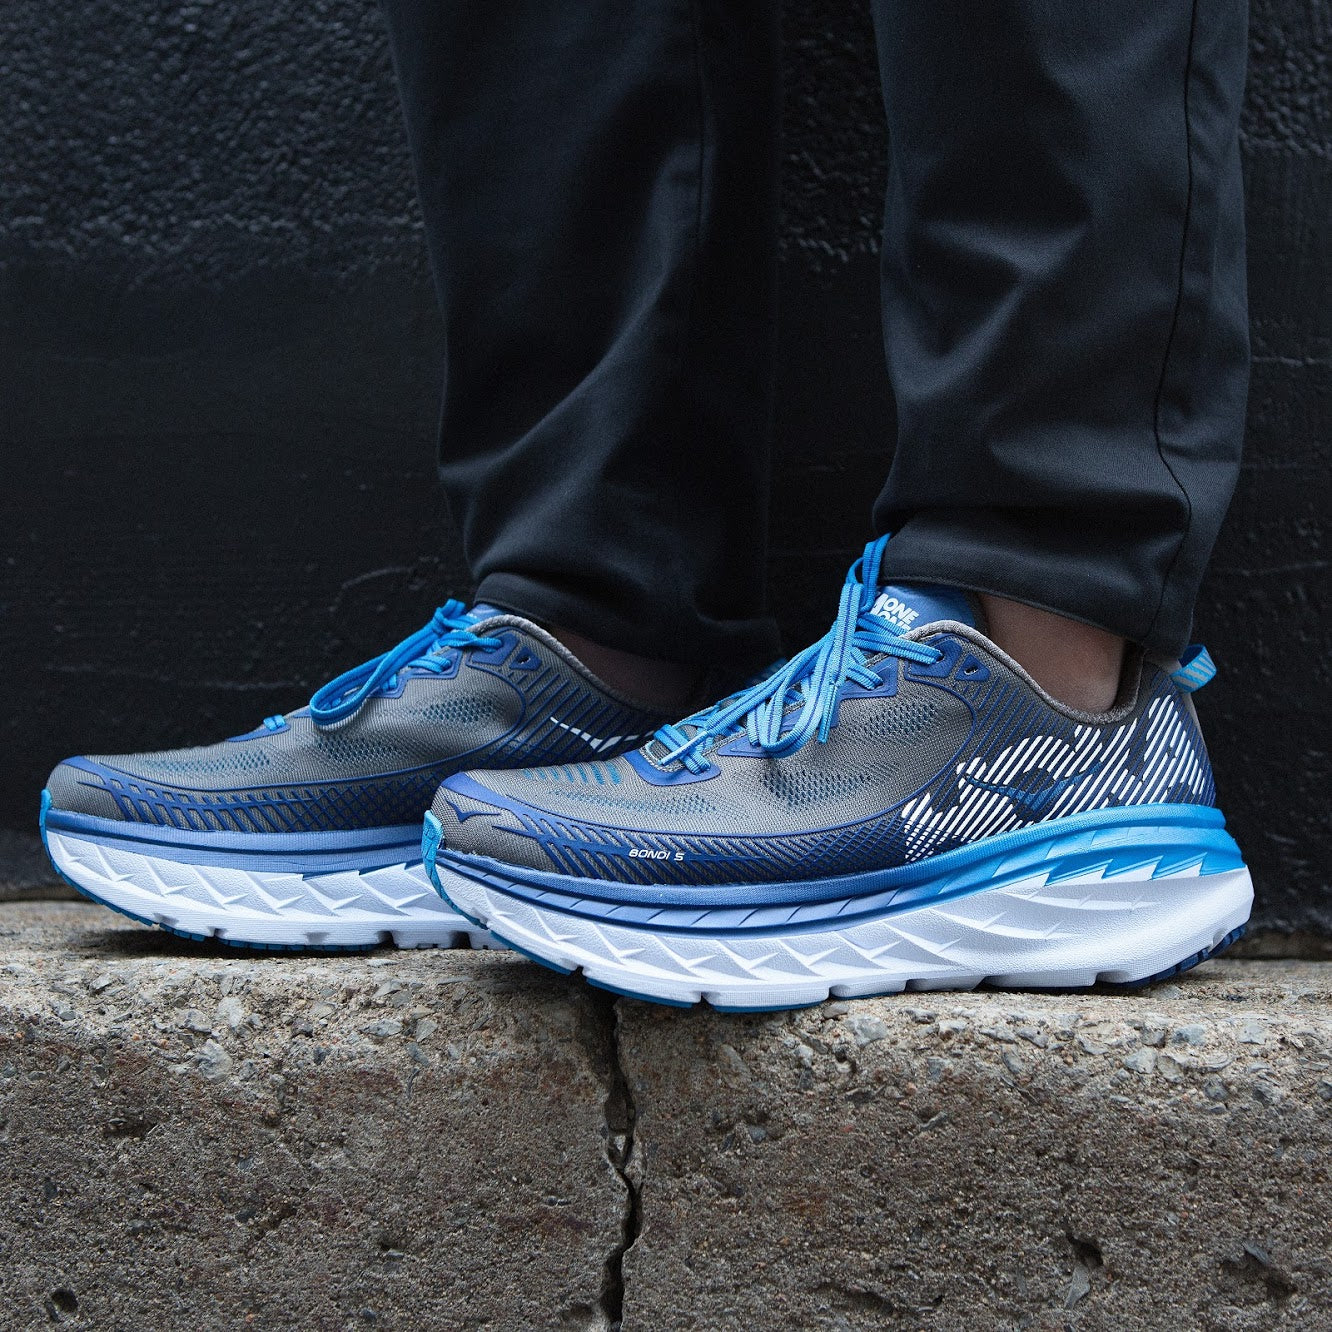 Introducing Hoka One One